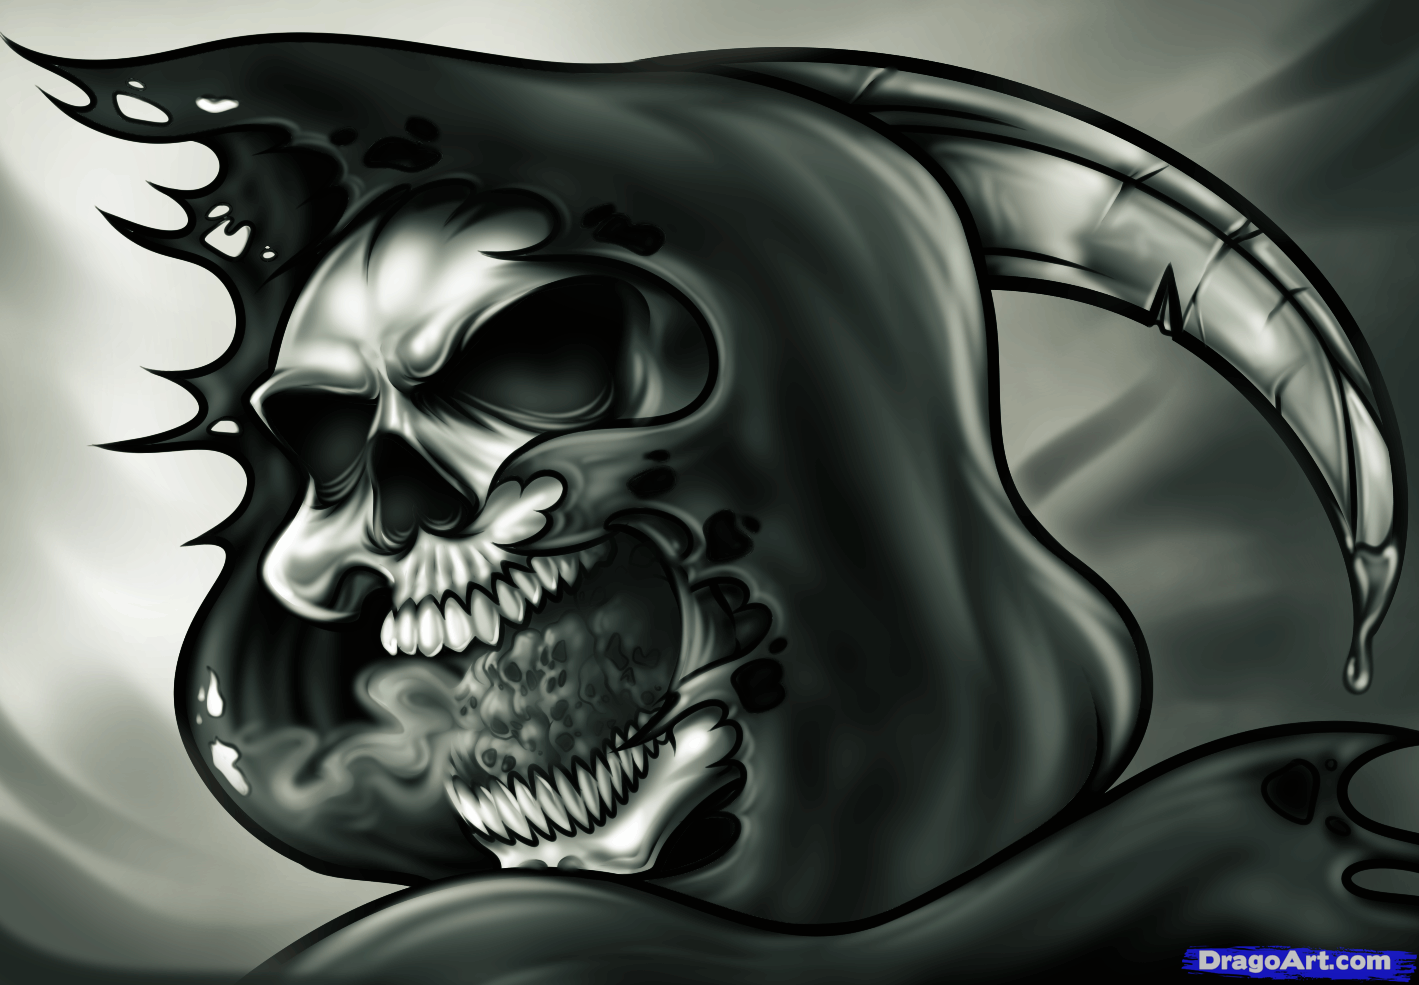 Tattoo designs skulls demons reapers how to draw a grim reaper tattoo designs skulls demons reapers how to draw a grim reaper skull tattoo voltagebd Images